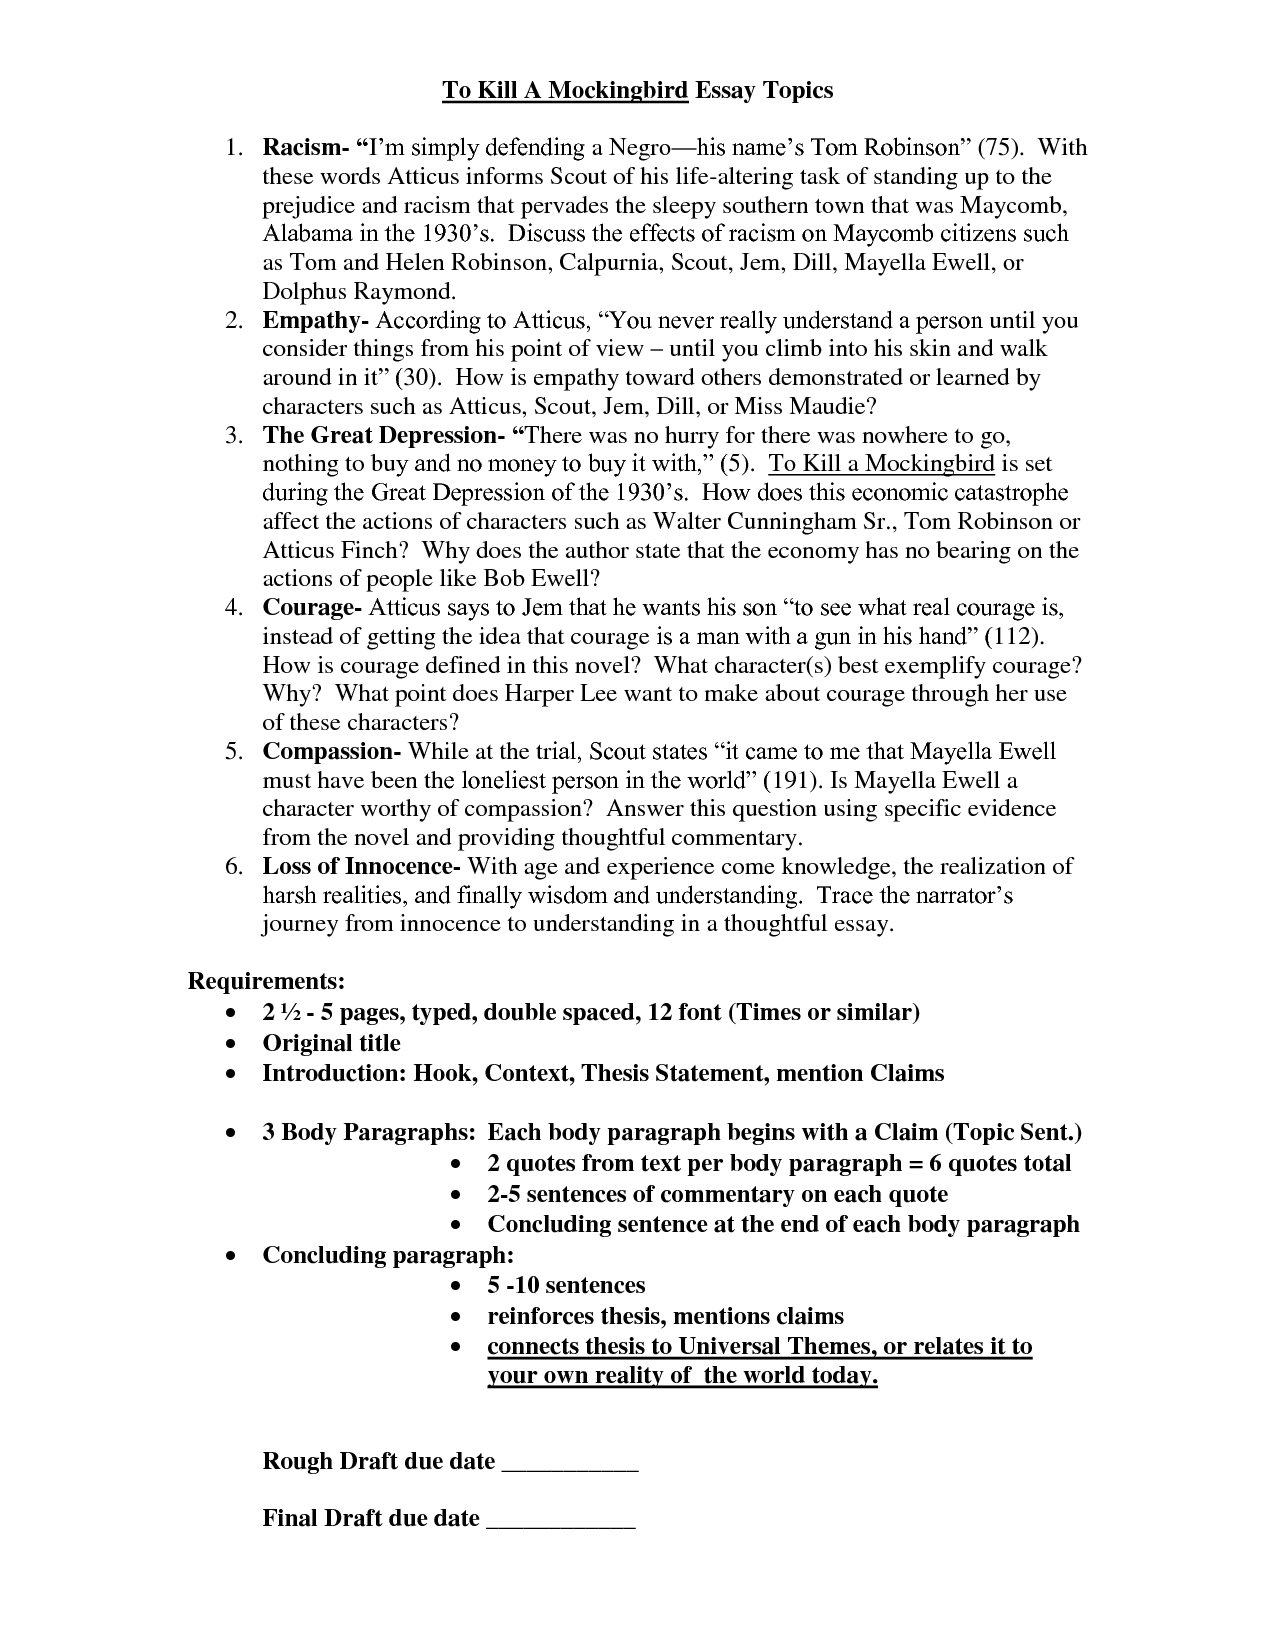 Fiske Real College Essays That Work Download